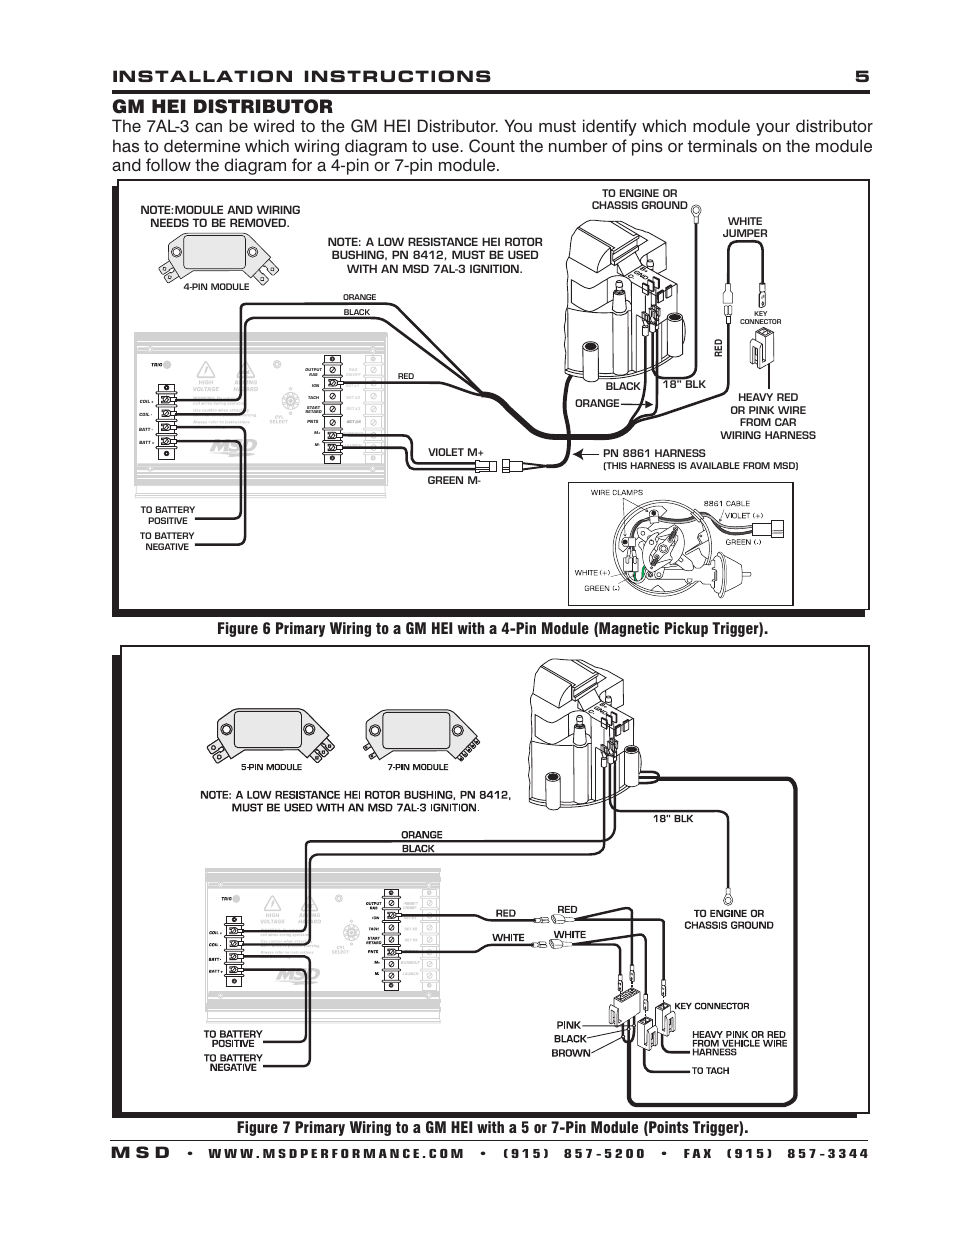 msd 7330 7al 3 ignition control installation page5?resize\\\\\\\=665%2C861 revtech ignition wiring diagram on revtech download wirning diagrams  at nearapp.co